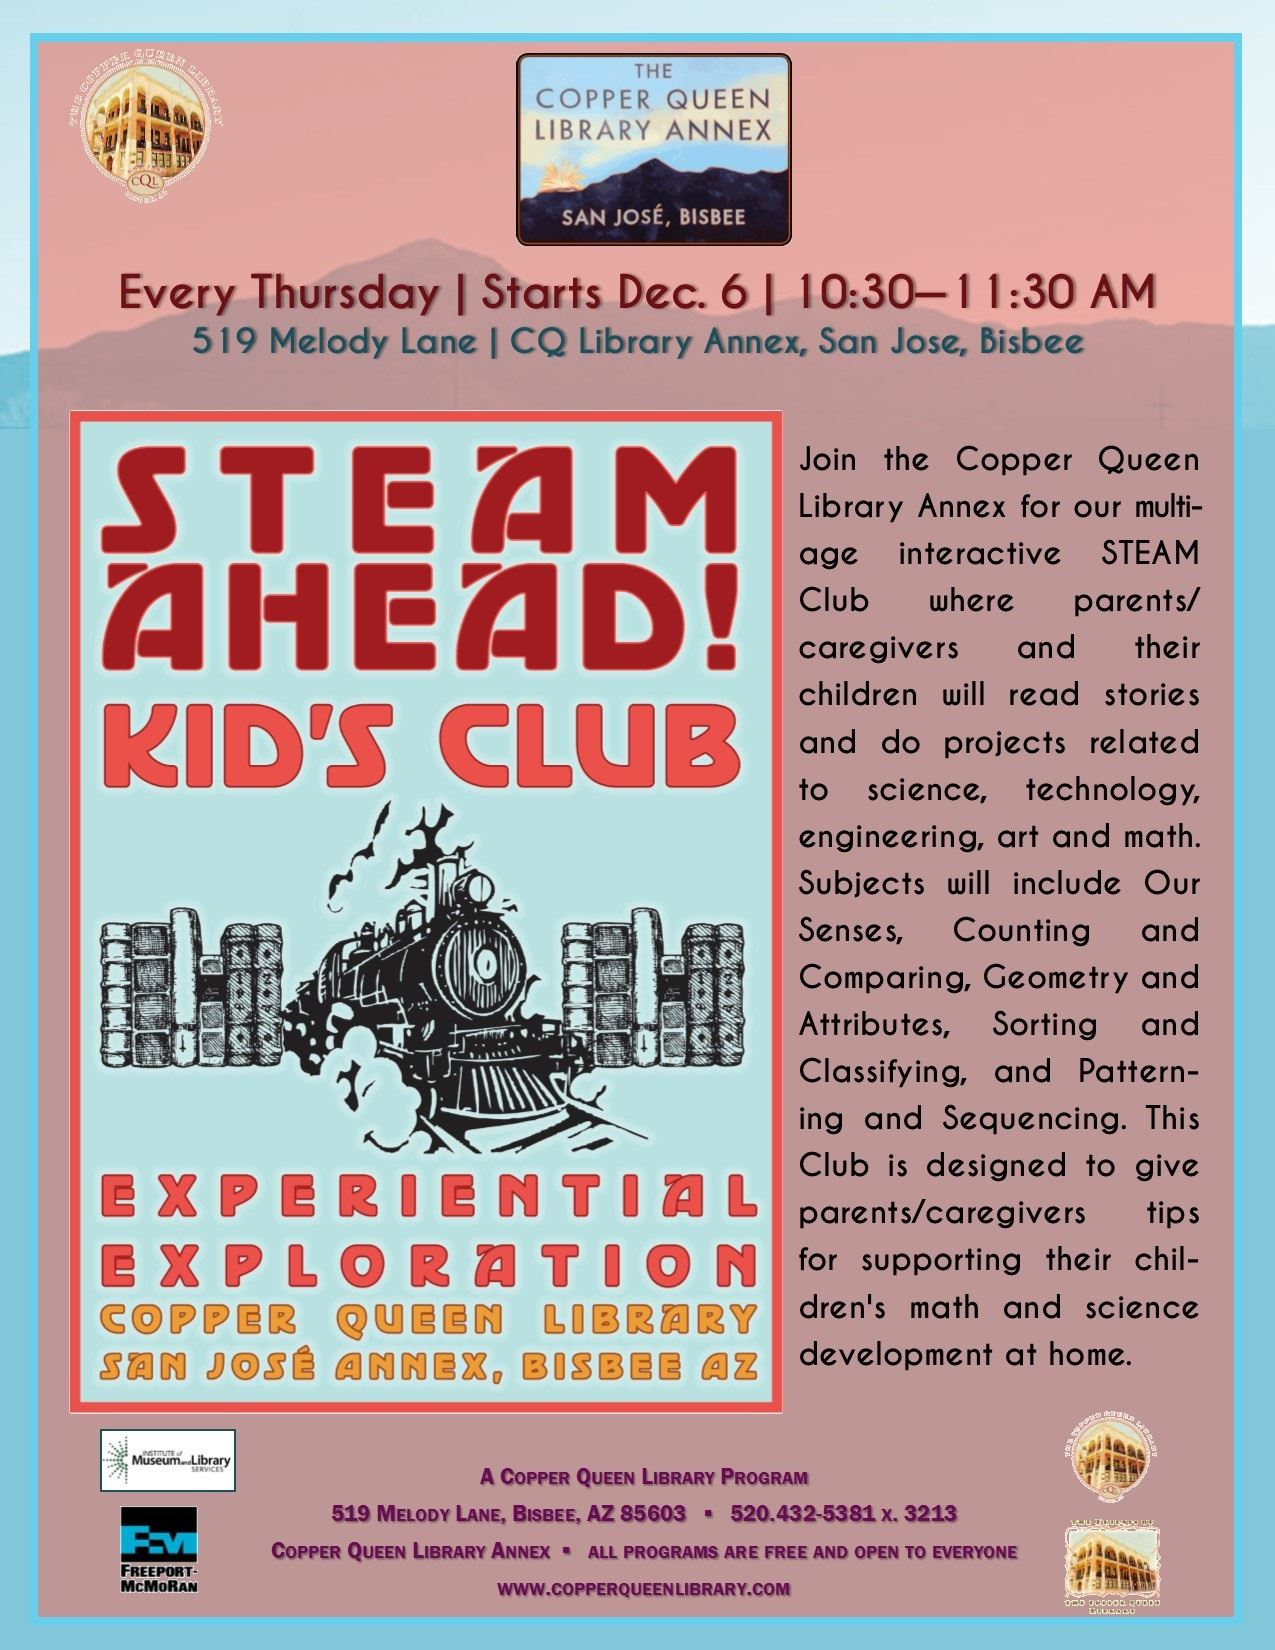 CQL ANNEX STEAM AHEAD CLUB 2018 8.5 x 11